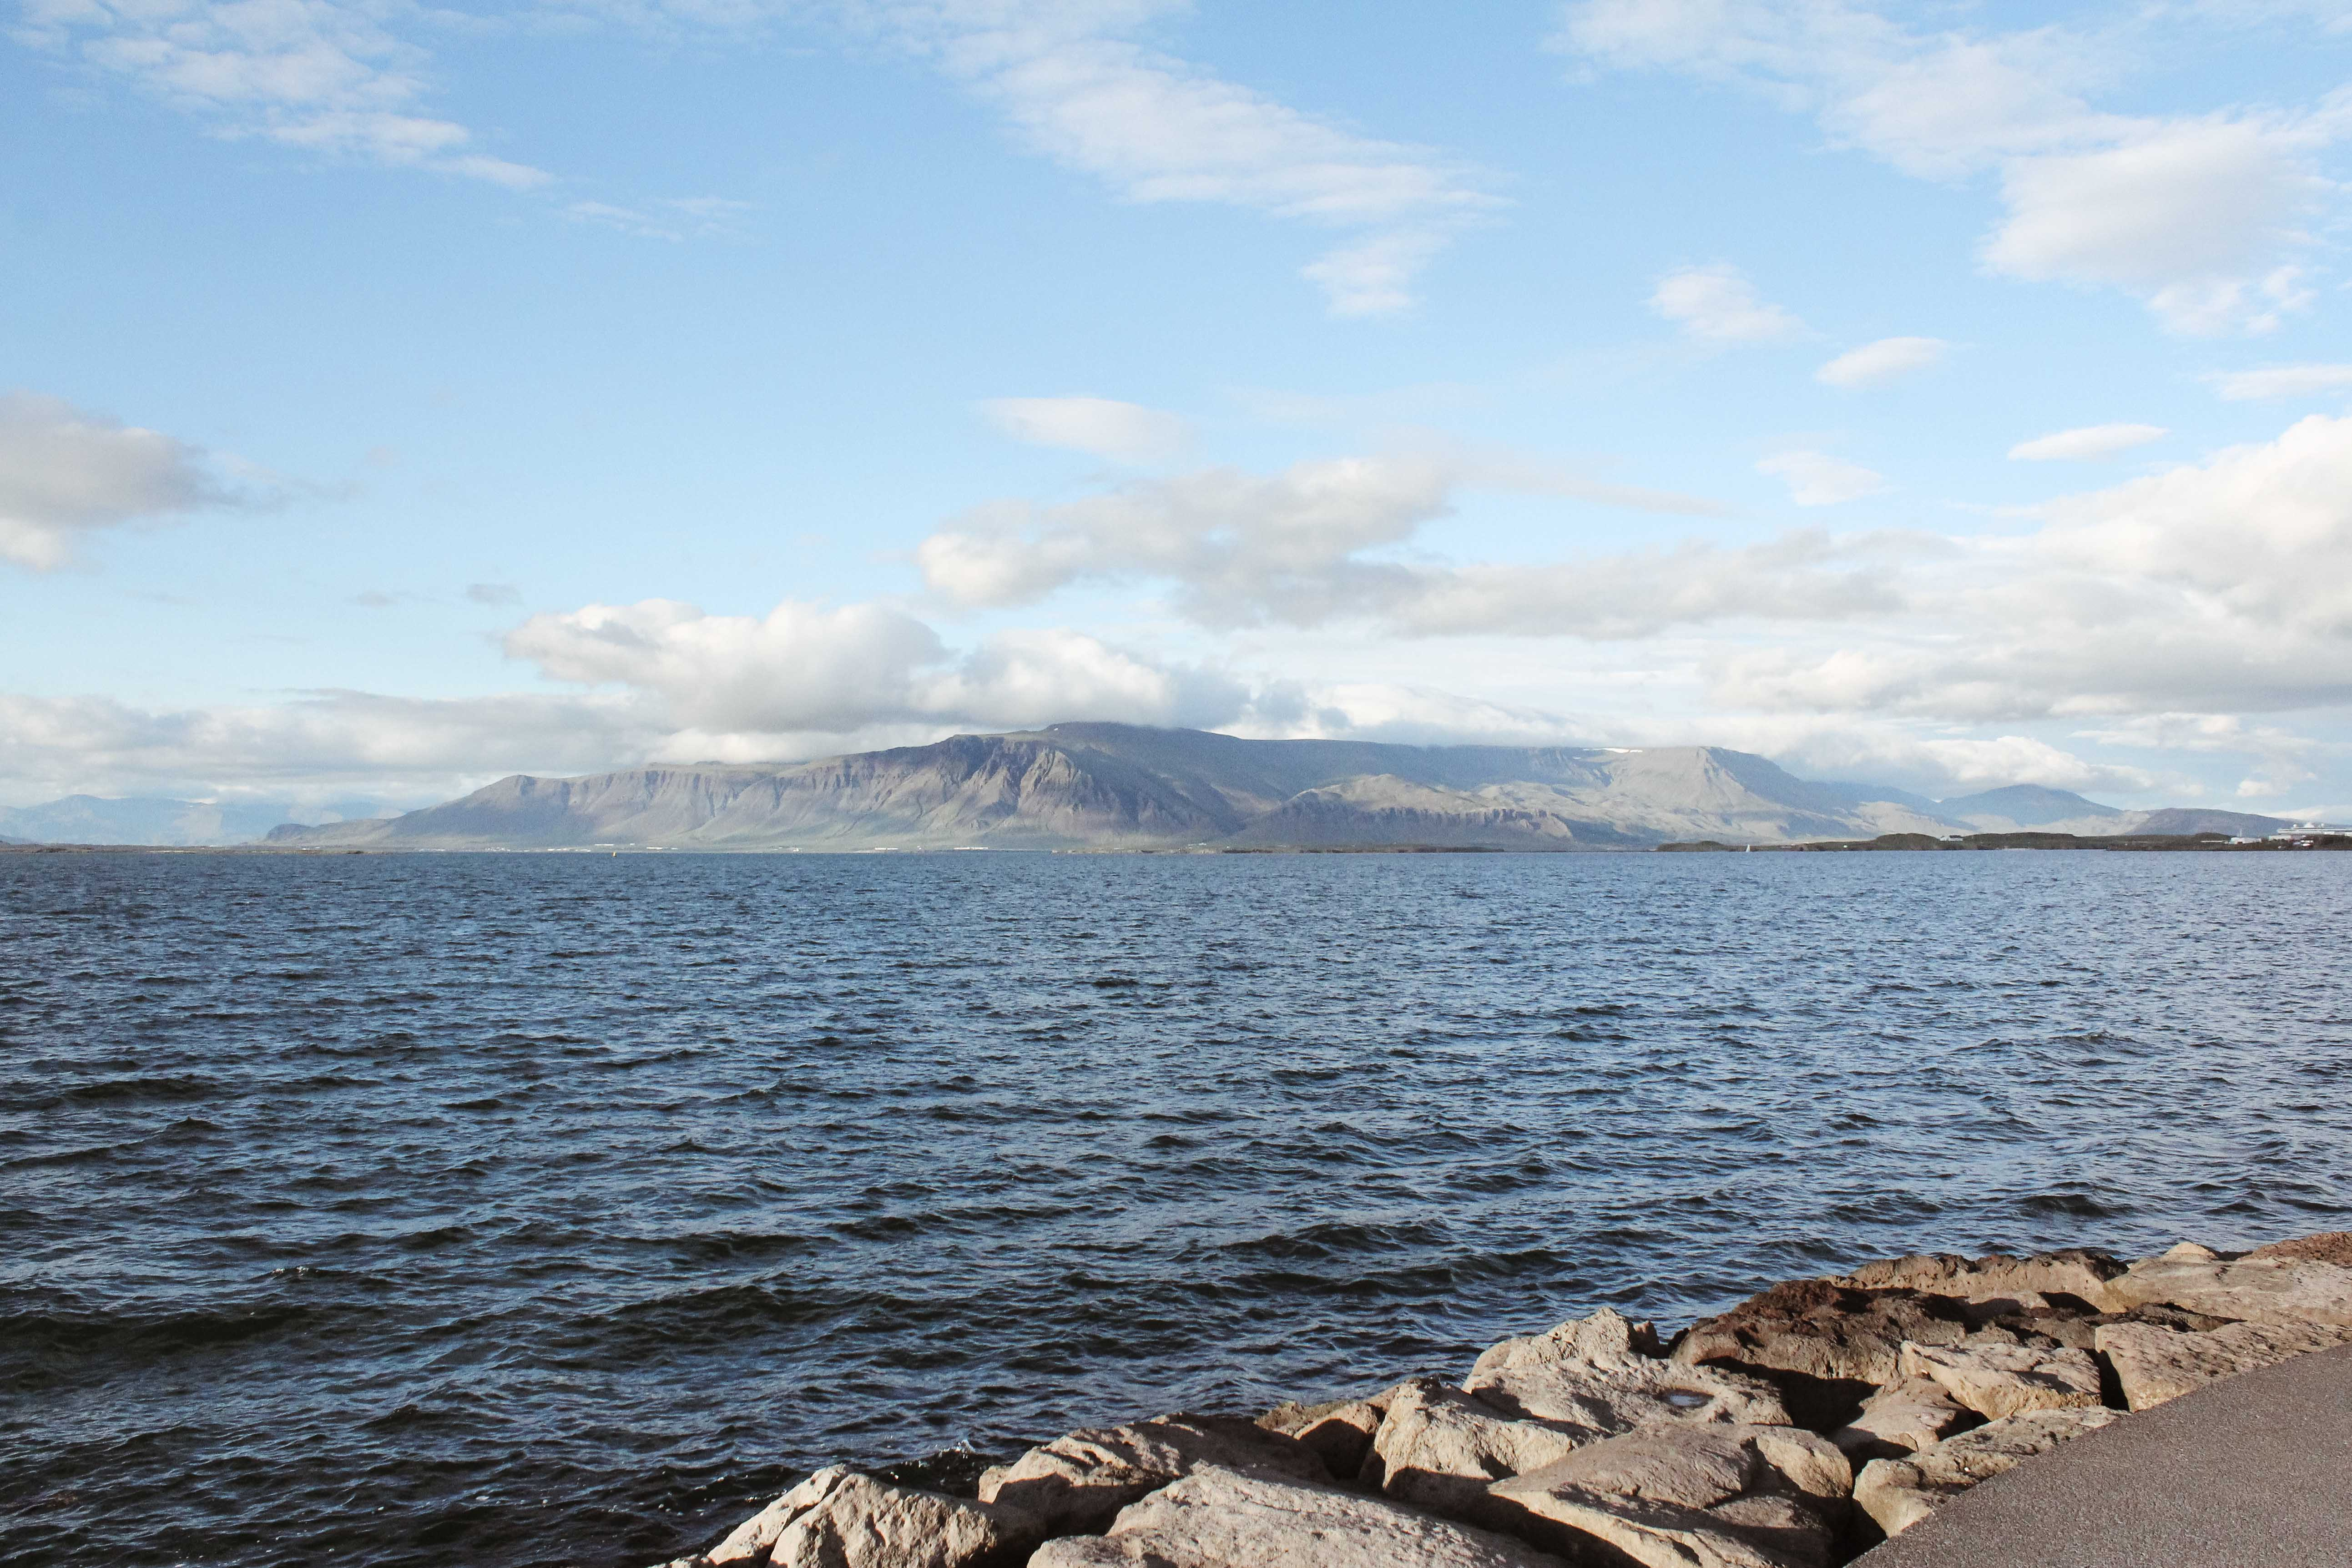 iceland travel guide – part 1 (overview)